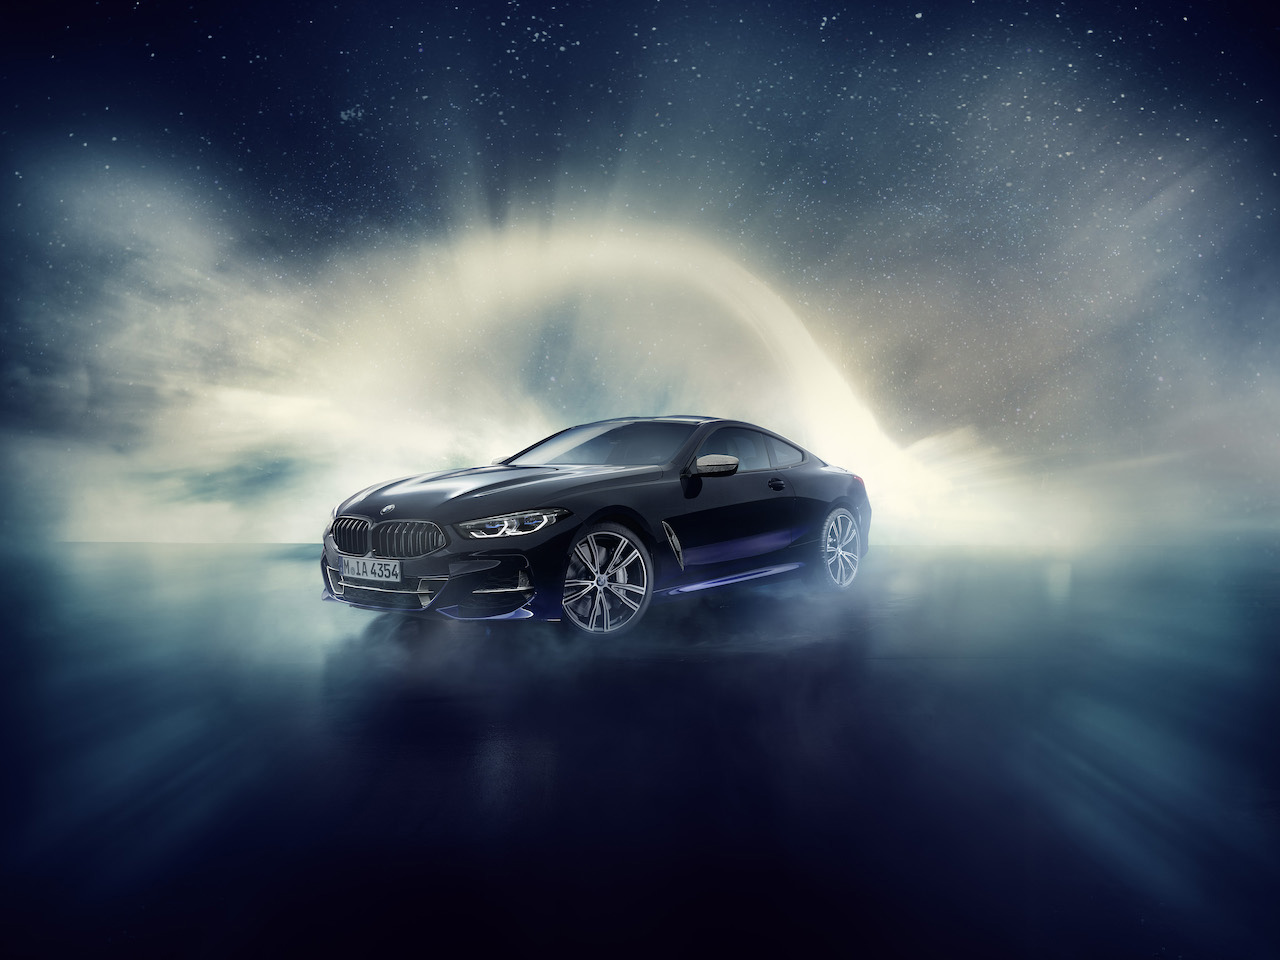 bmw-individual-m850i-xdrive-coupe-night-sky-2